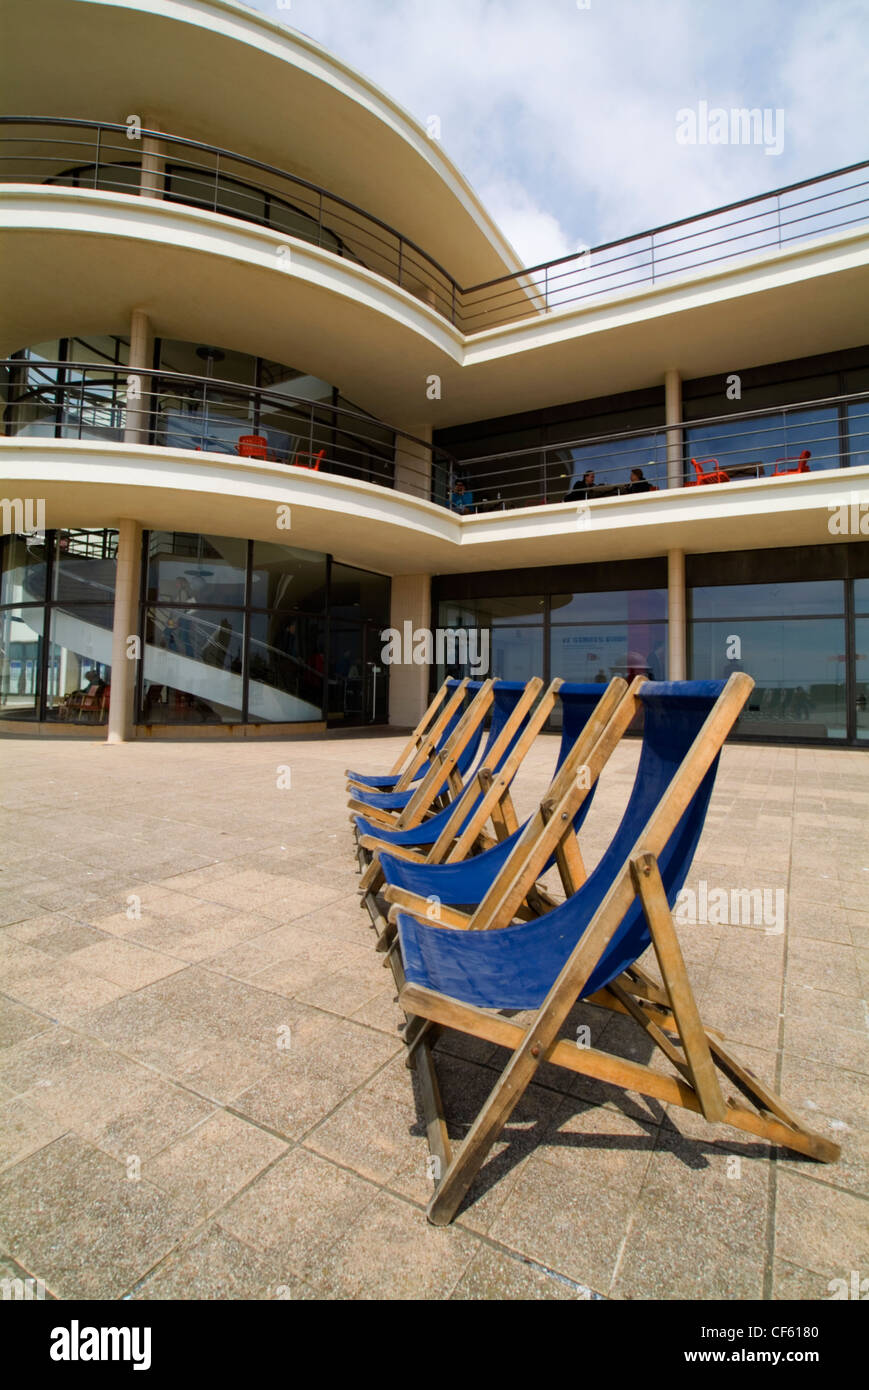 Deckchairs outside the De La Warr Pavillion. The building was designed by Eric Mendelsohn and Serge Chermayeff and - Stock Image